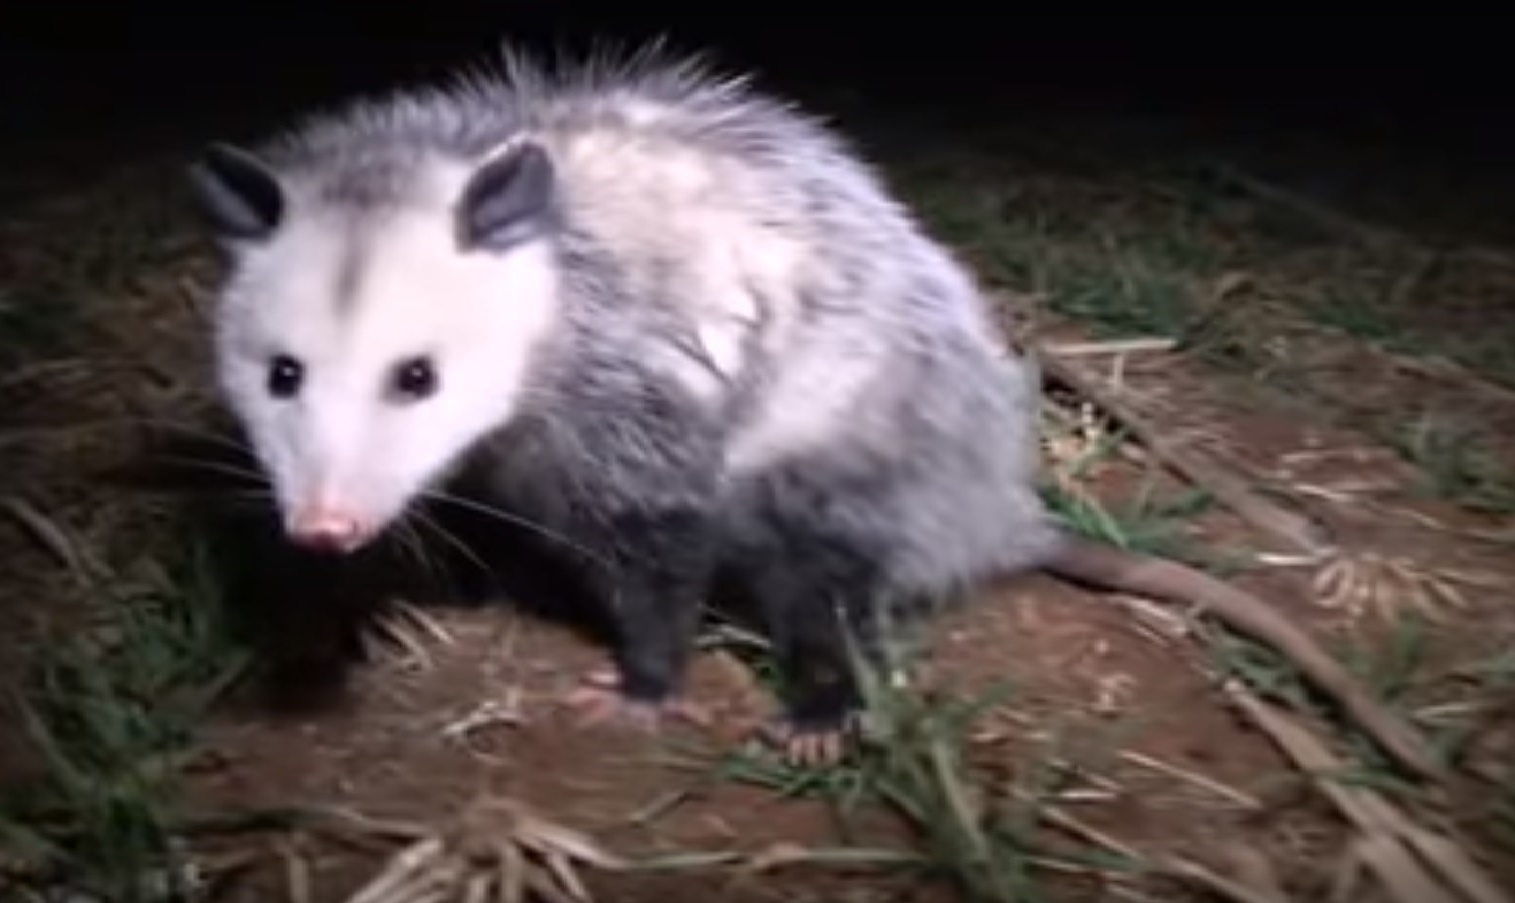 The Virginia Opossum is now found in Canada, Possum on the grass